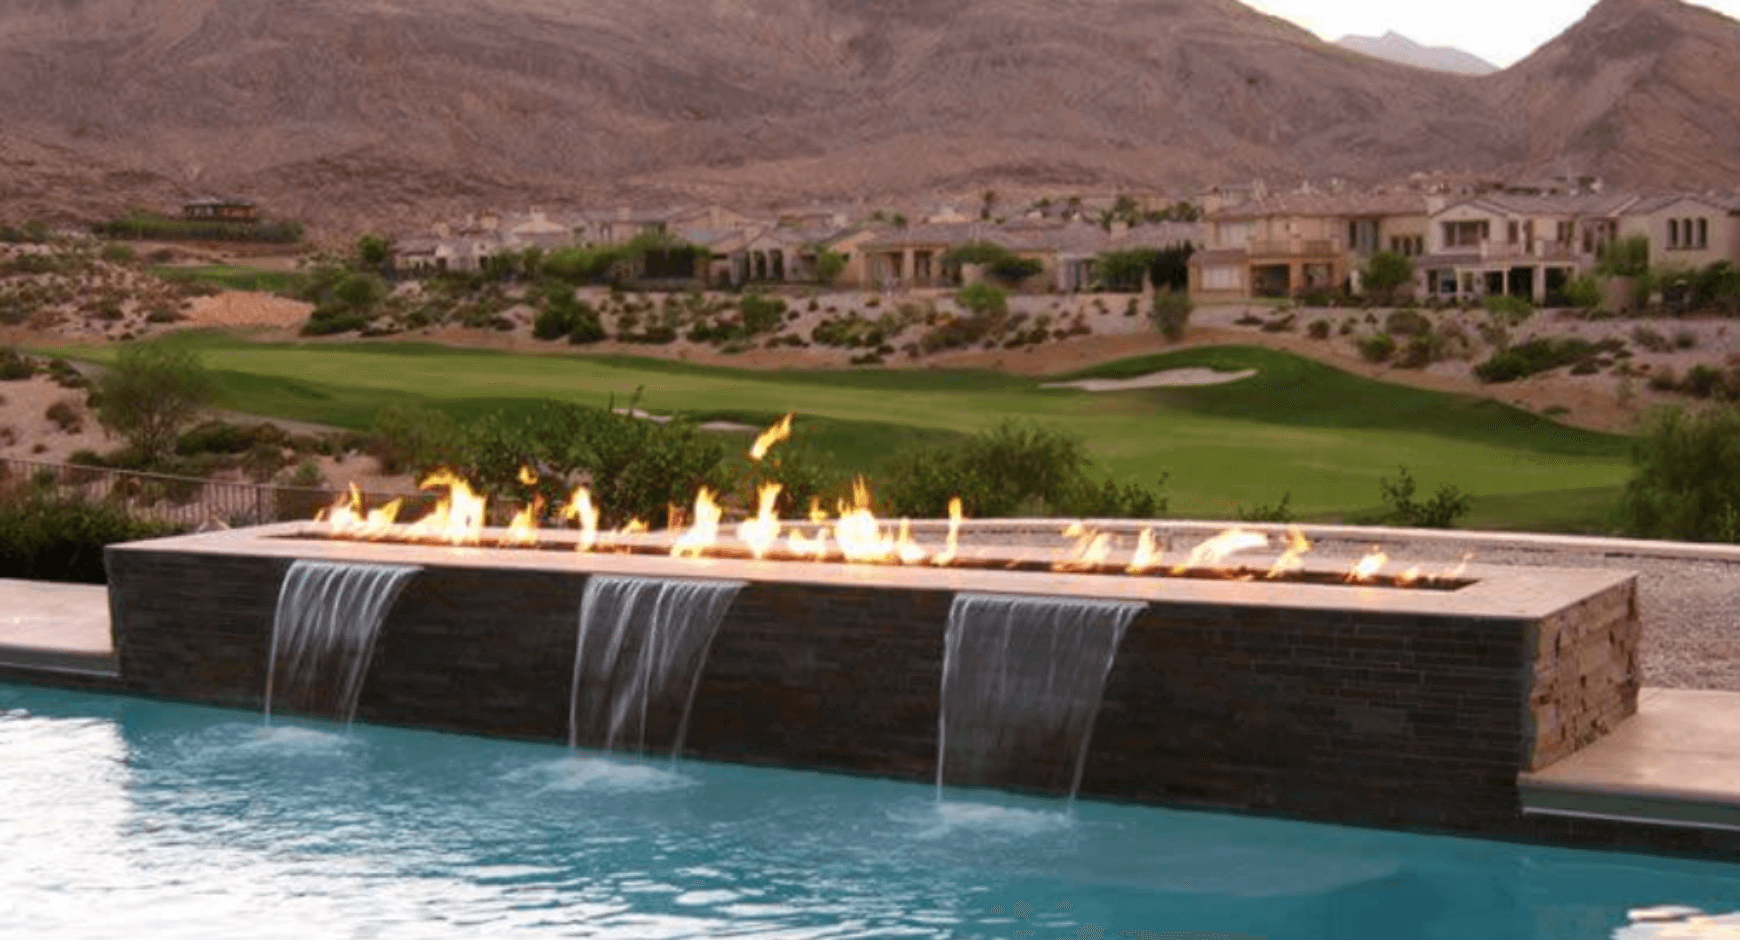 Outdoor fire and water feature